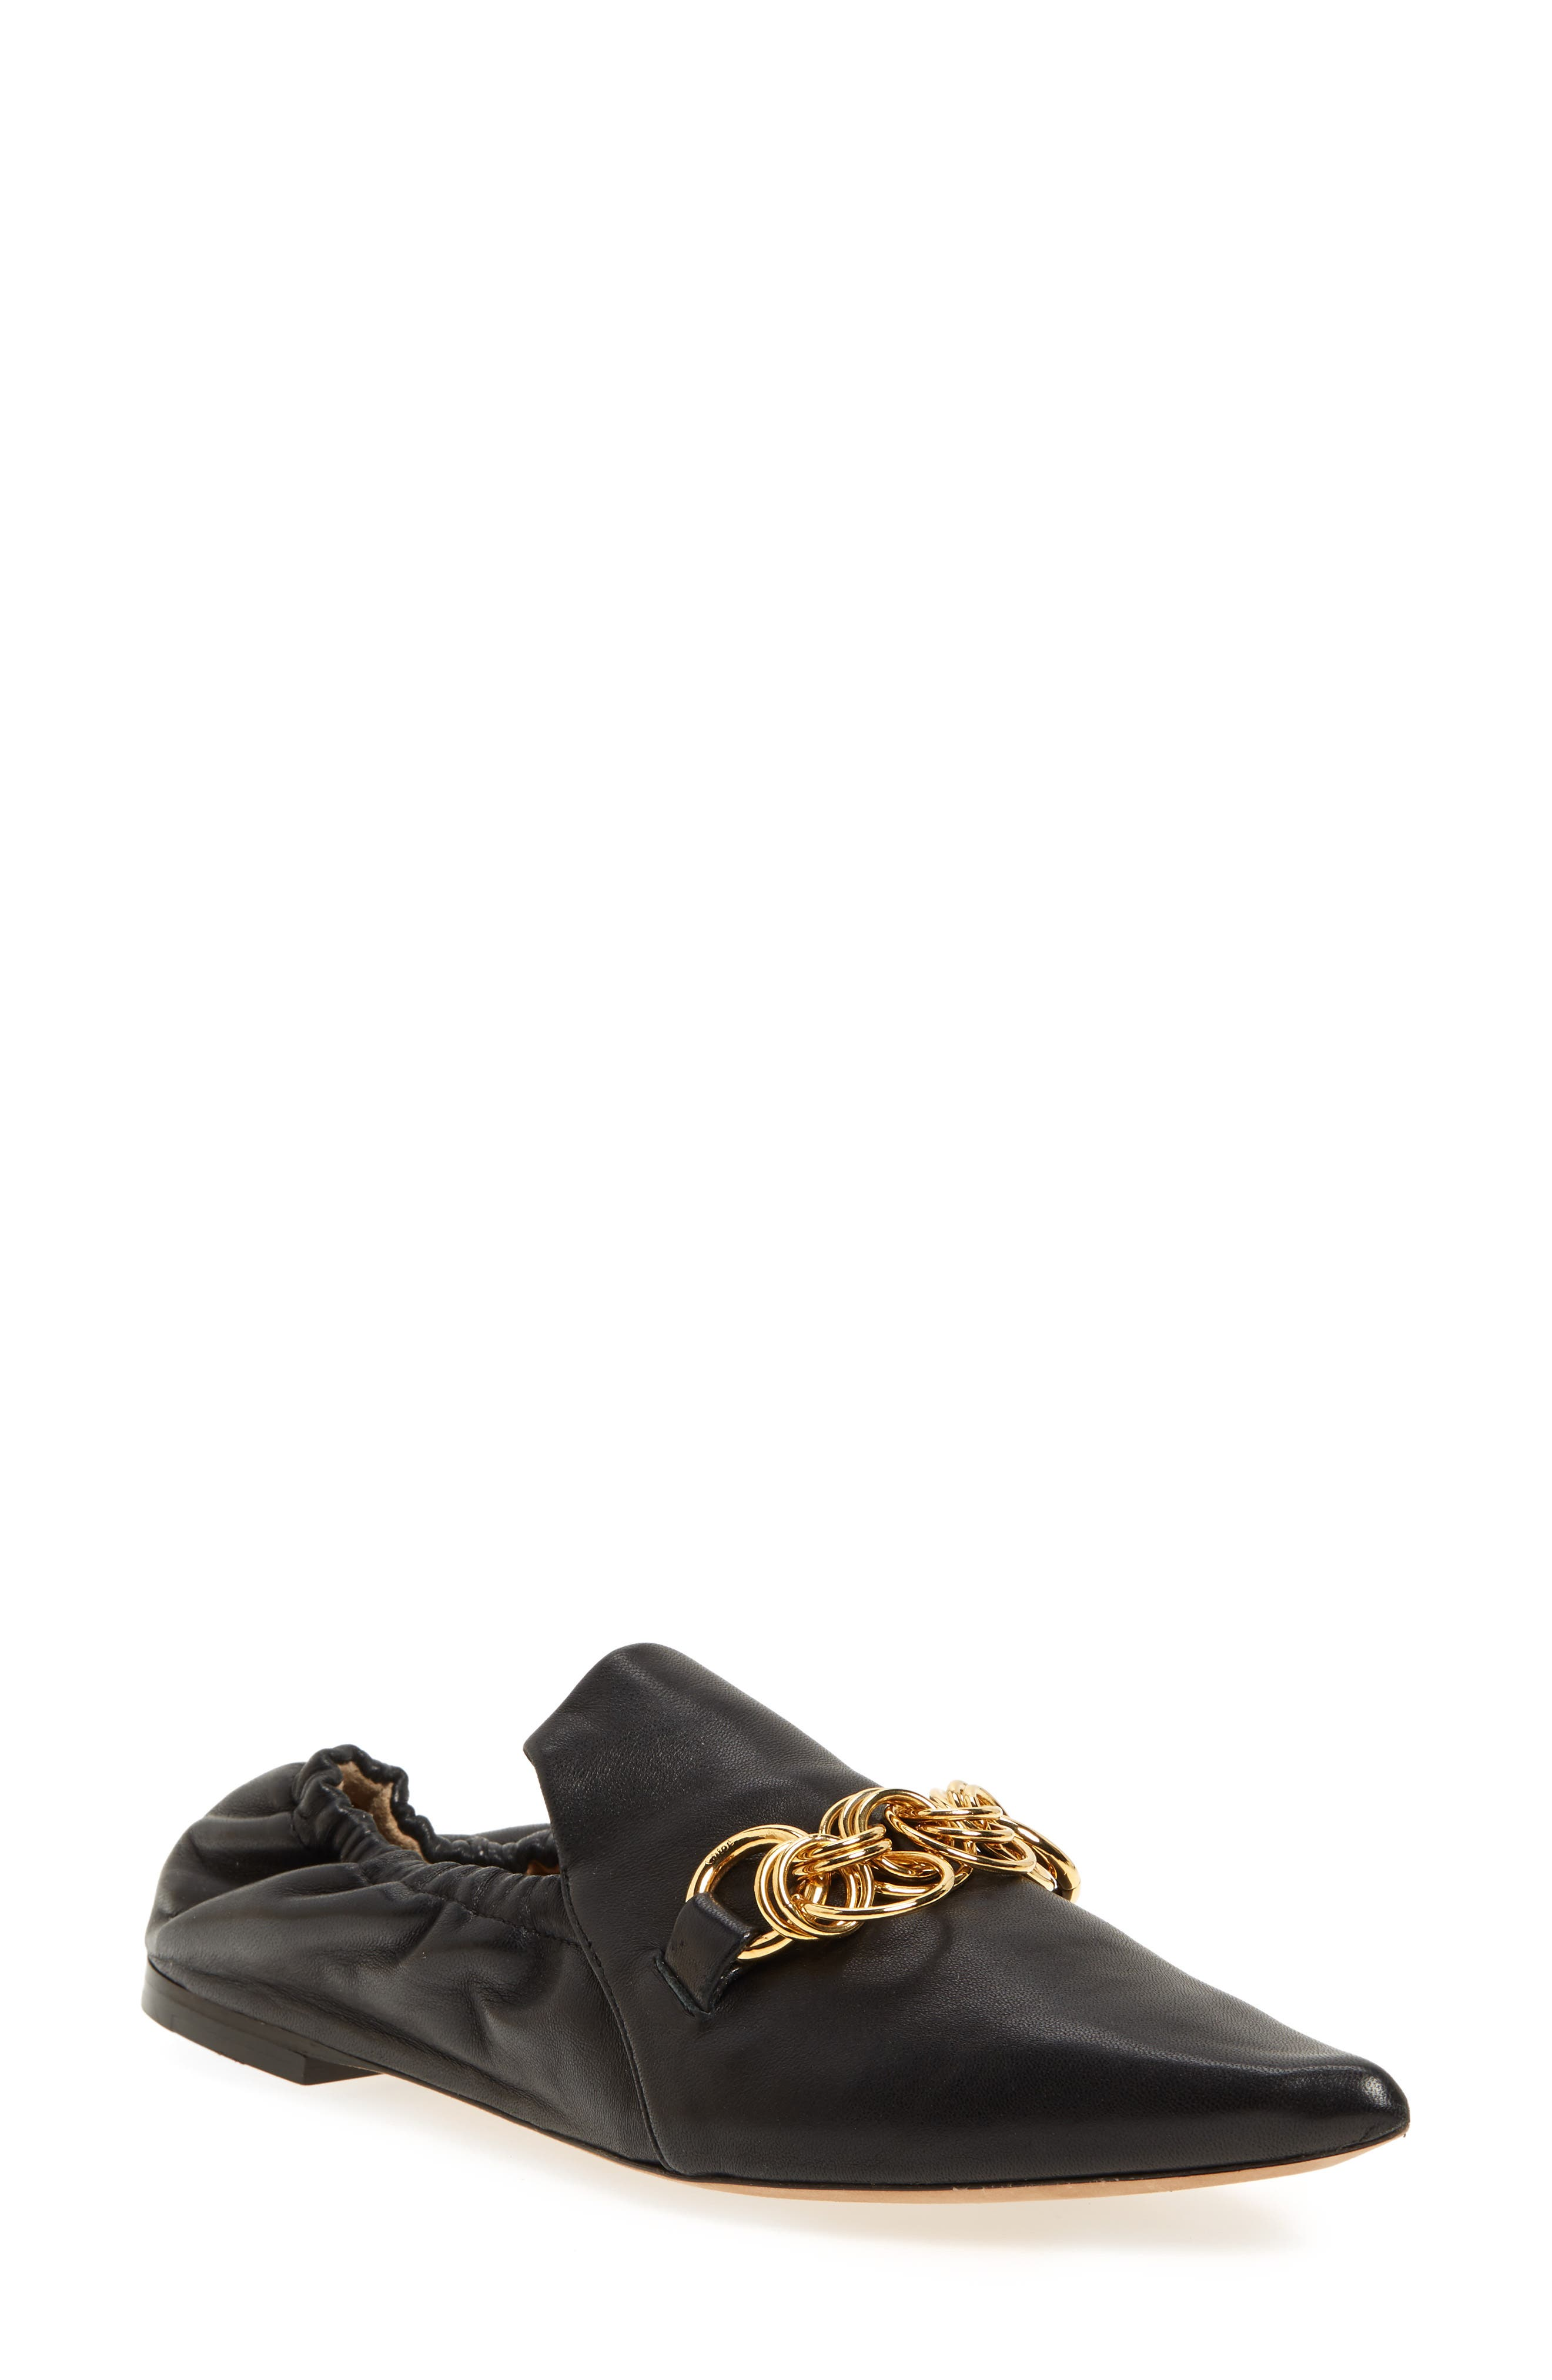 Chloe Reese Chain Bit Loafer Flat, Black